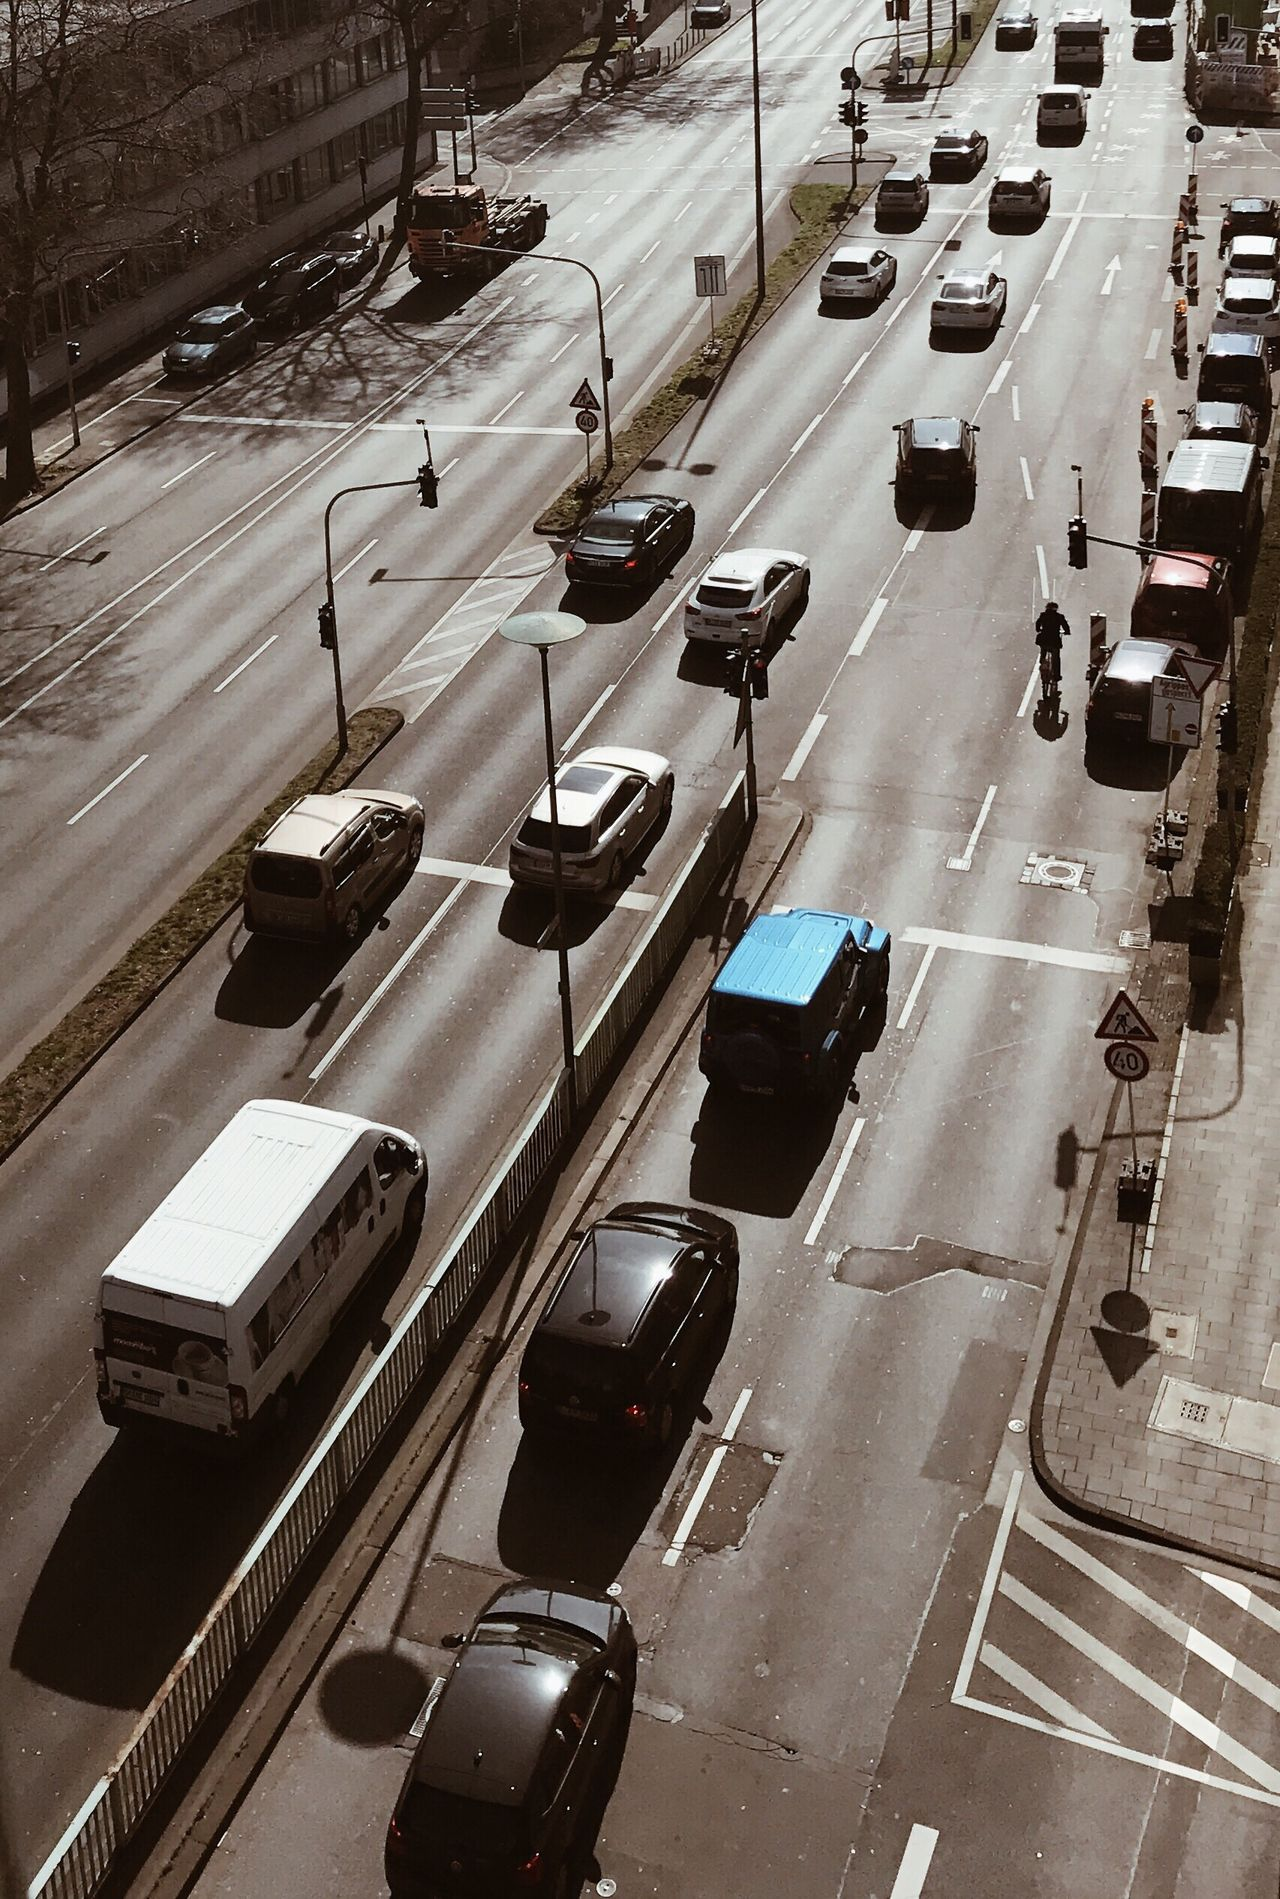 Flying High Dronephotography Transportation Car High Angle View Mode Of Transport Traffic Road Outdoors City Rush Hour Sunshine Urbanphotography Urban Life